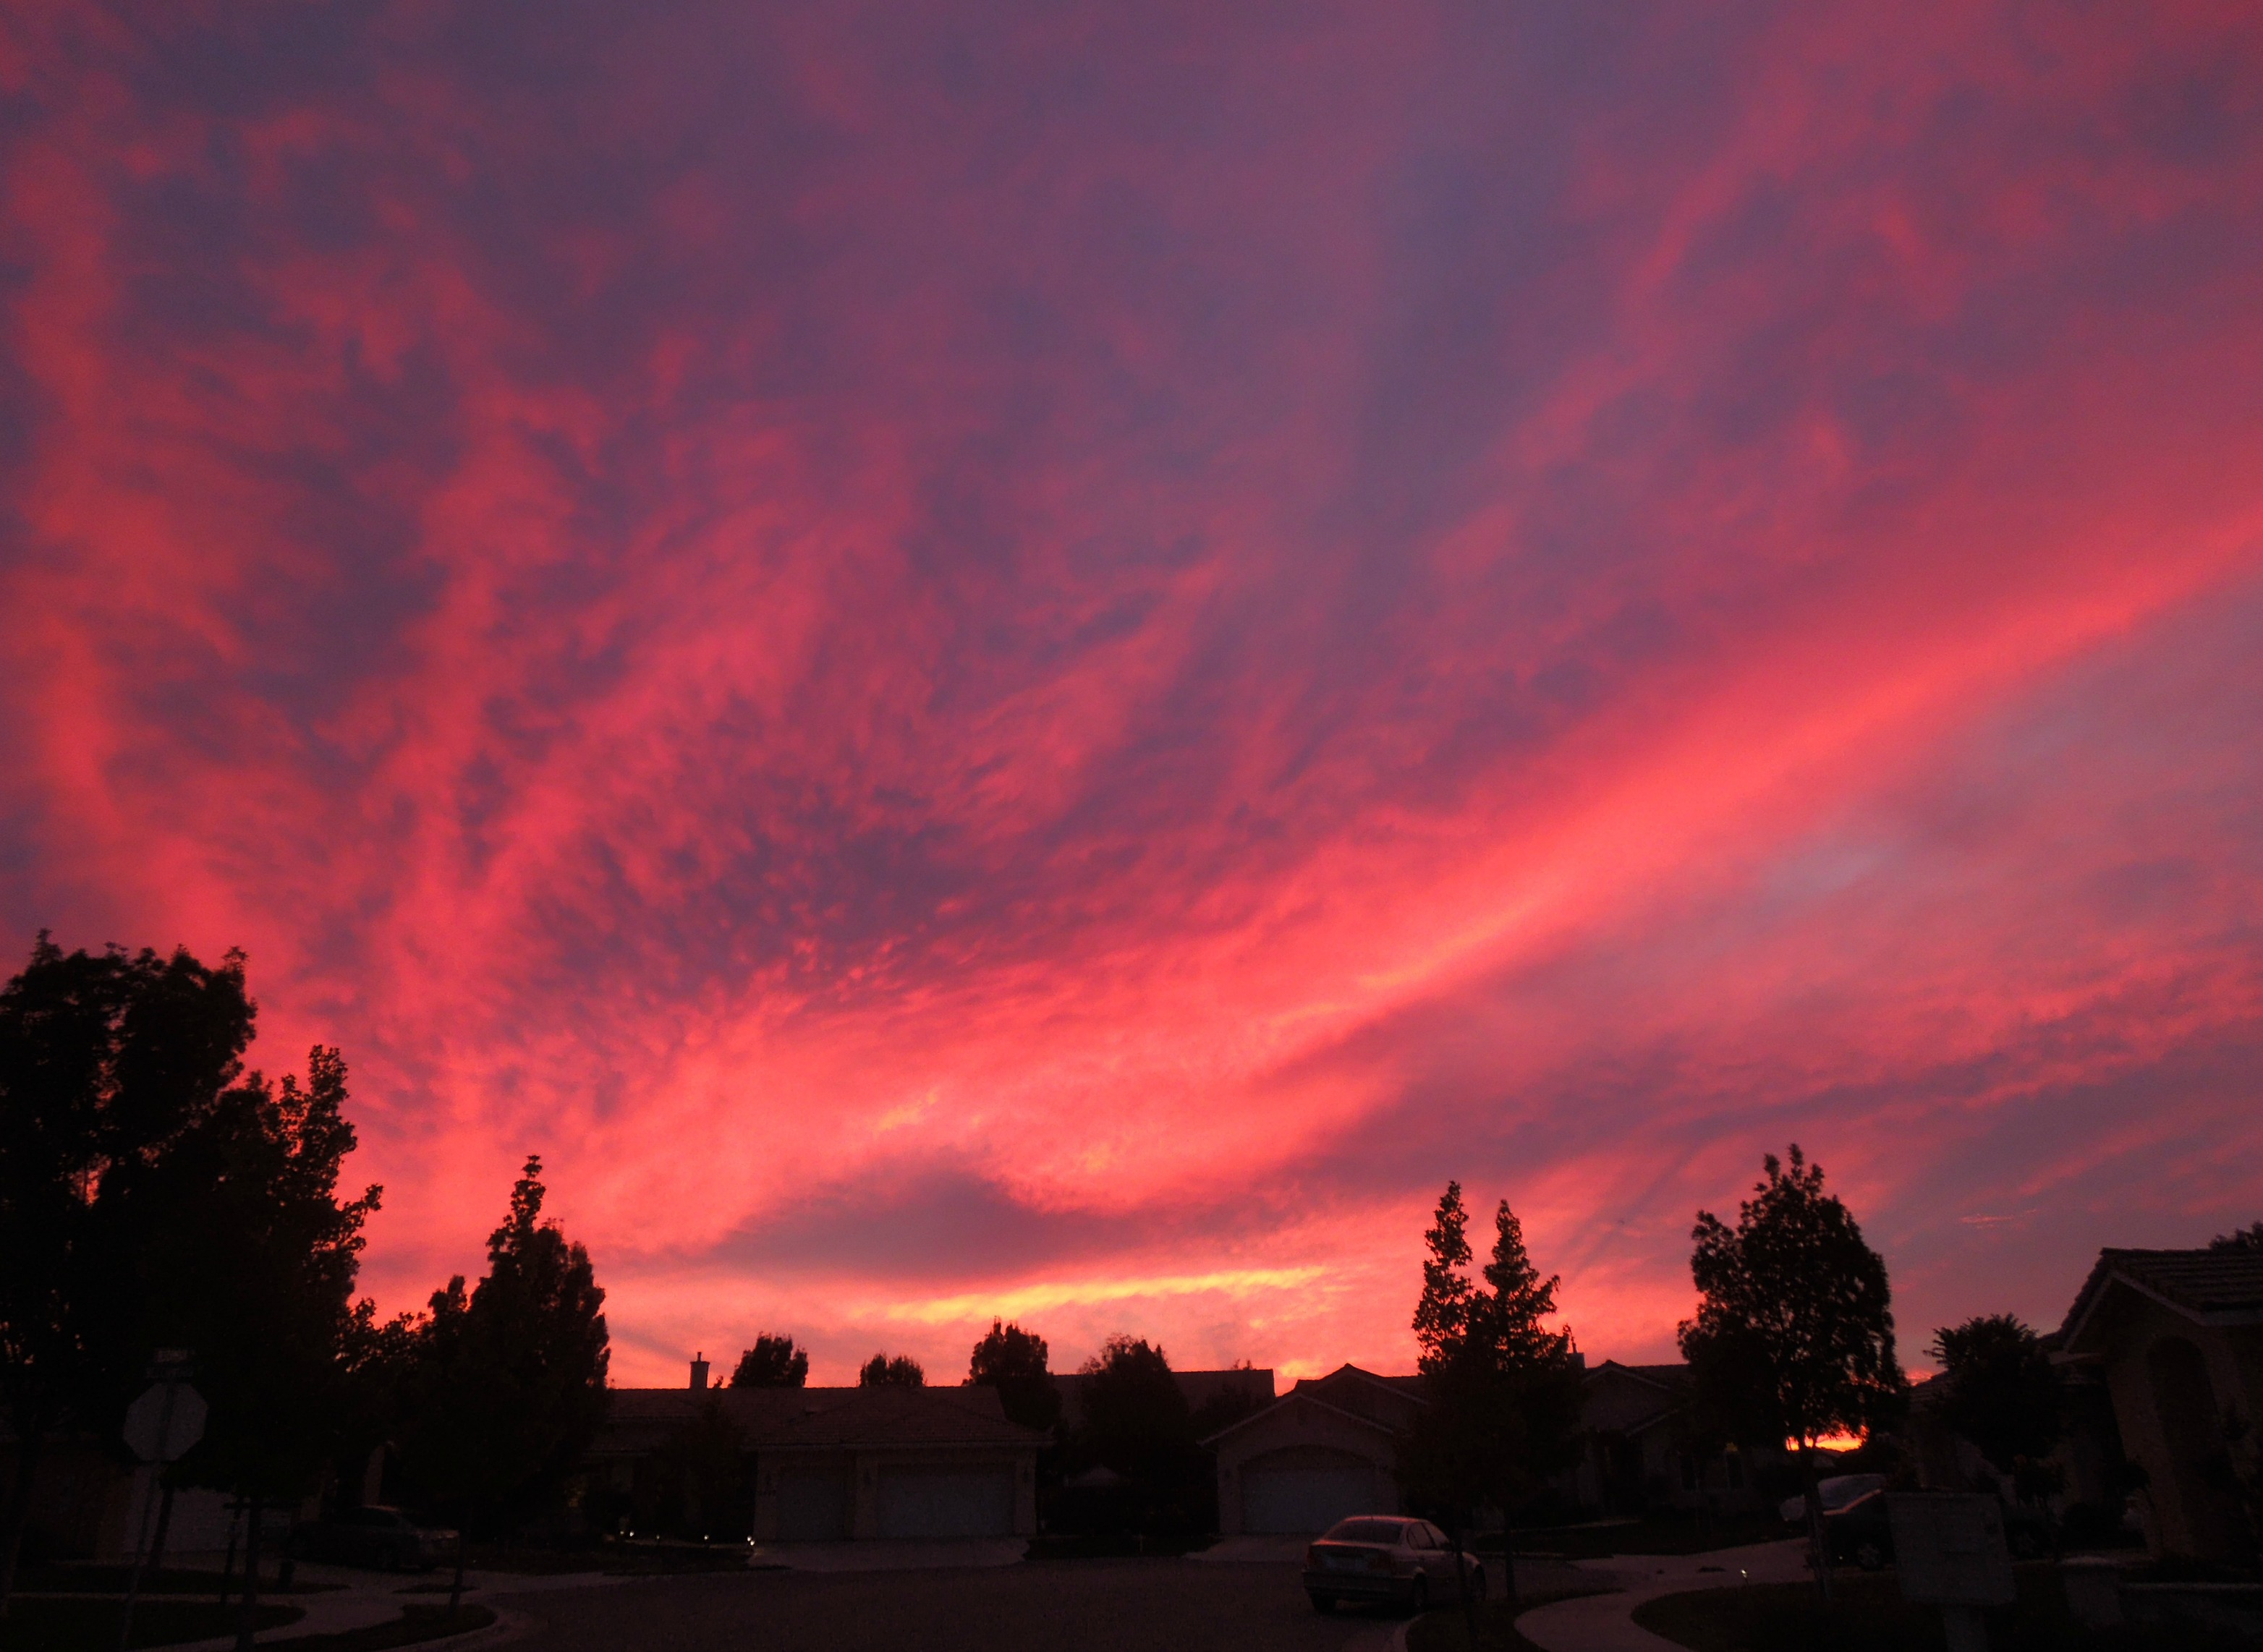 Red Sunset in Paso Robles, California